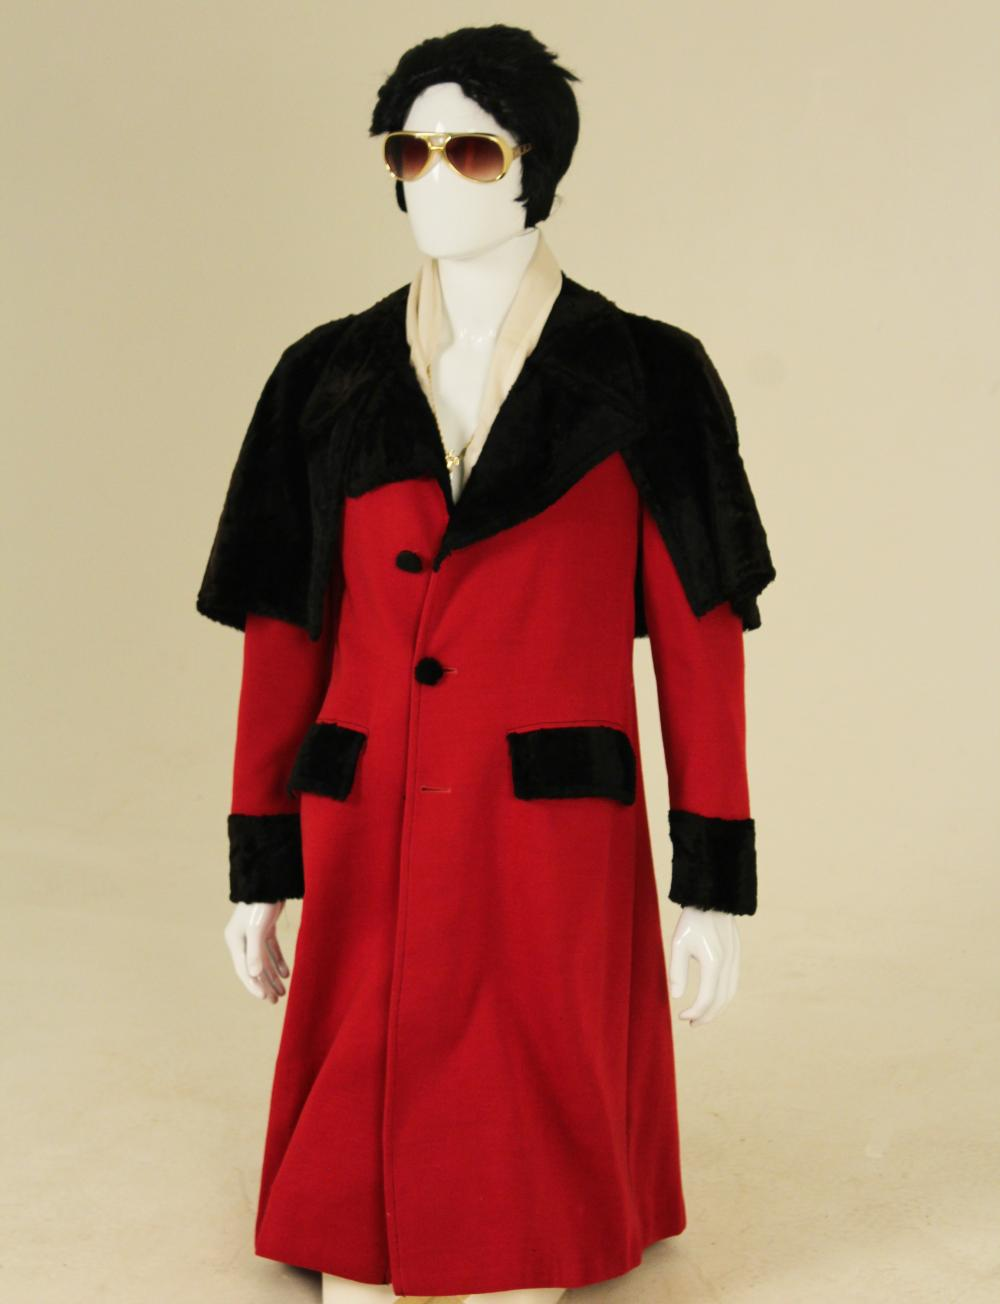 Lot 365: ELVIS PRESLEY OWNED AND WORN SUPER FLY LONG COAT